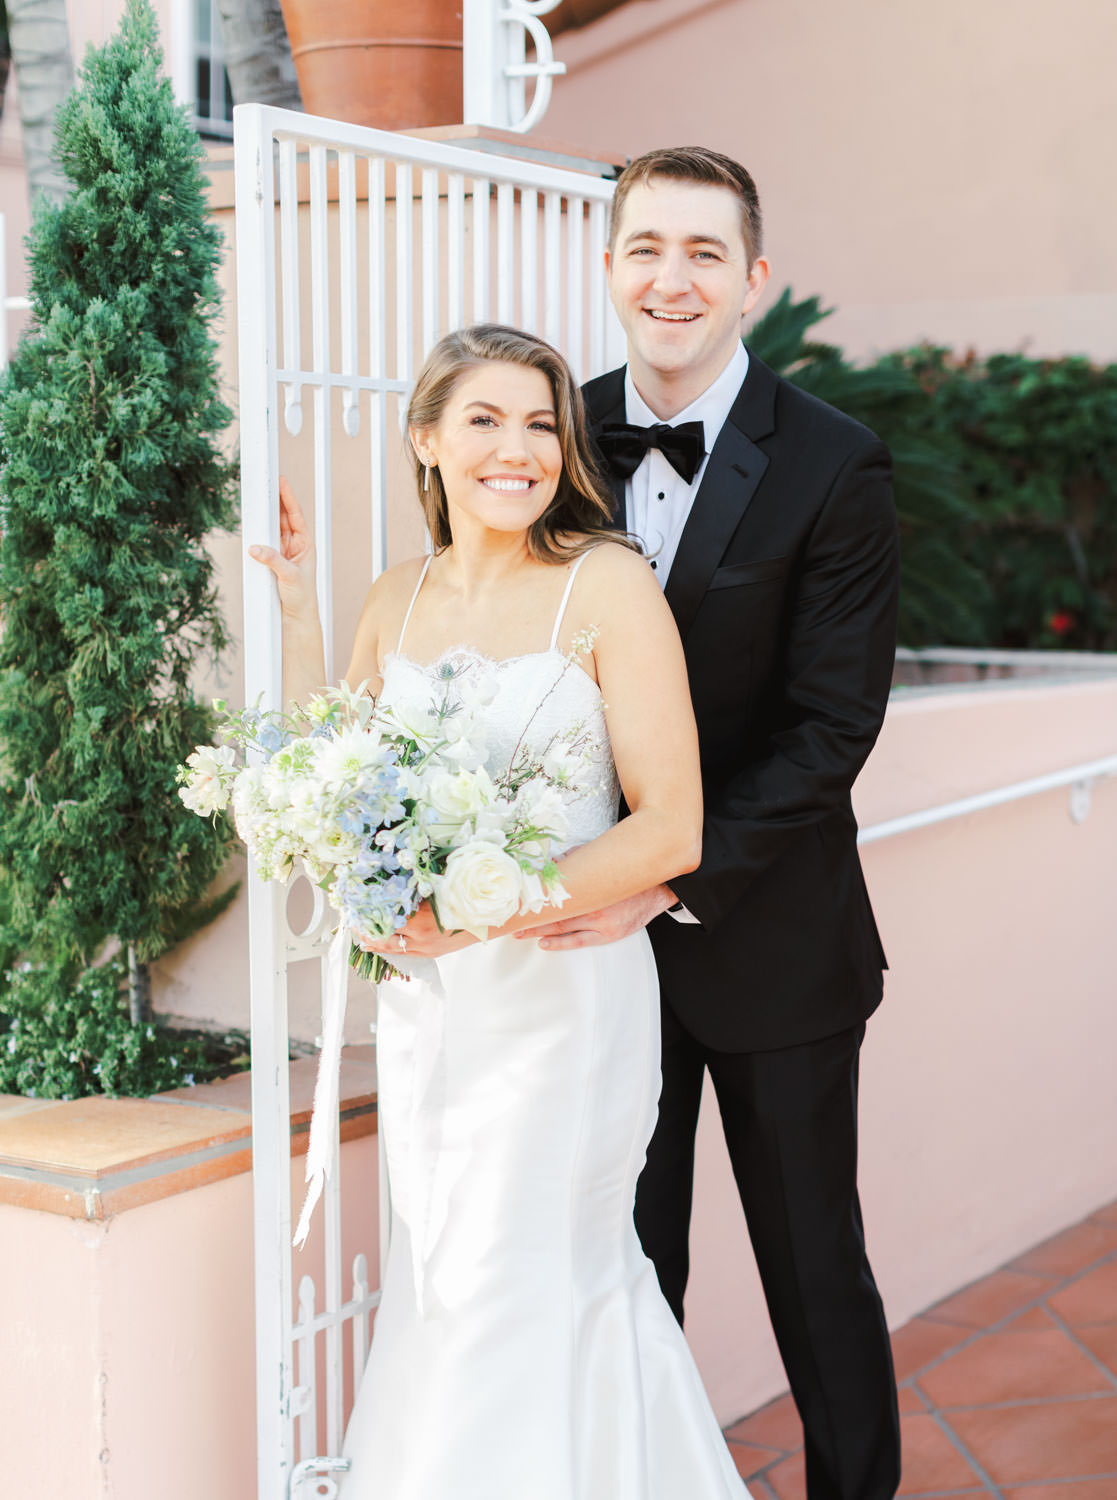 Bride and groom portrait by white gate and pink walls, Intimate Wedding at La Valencia Hotel in La Jolla by Cavin Elizabeth Photography